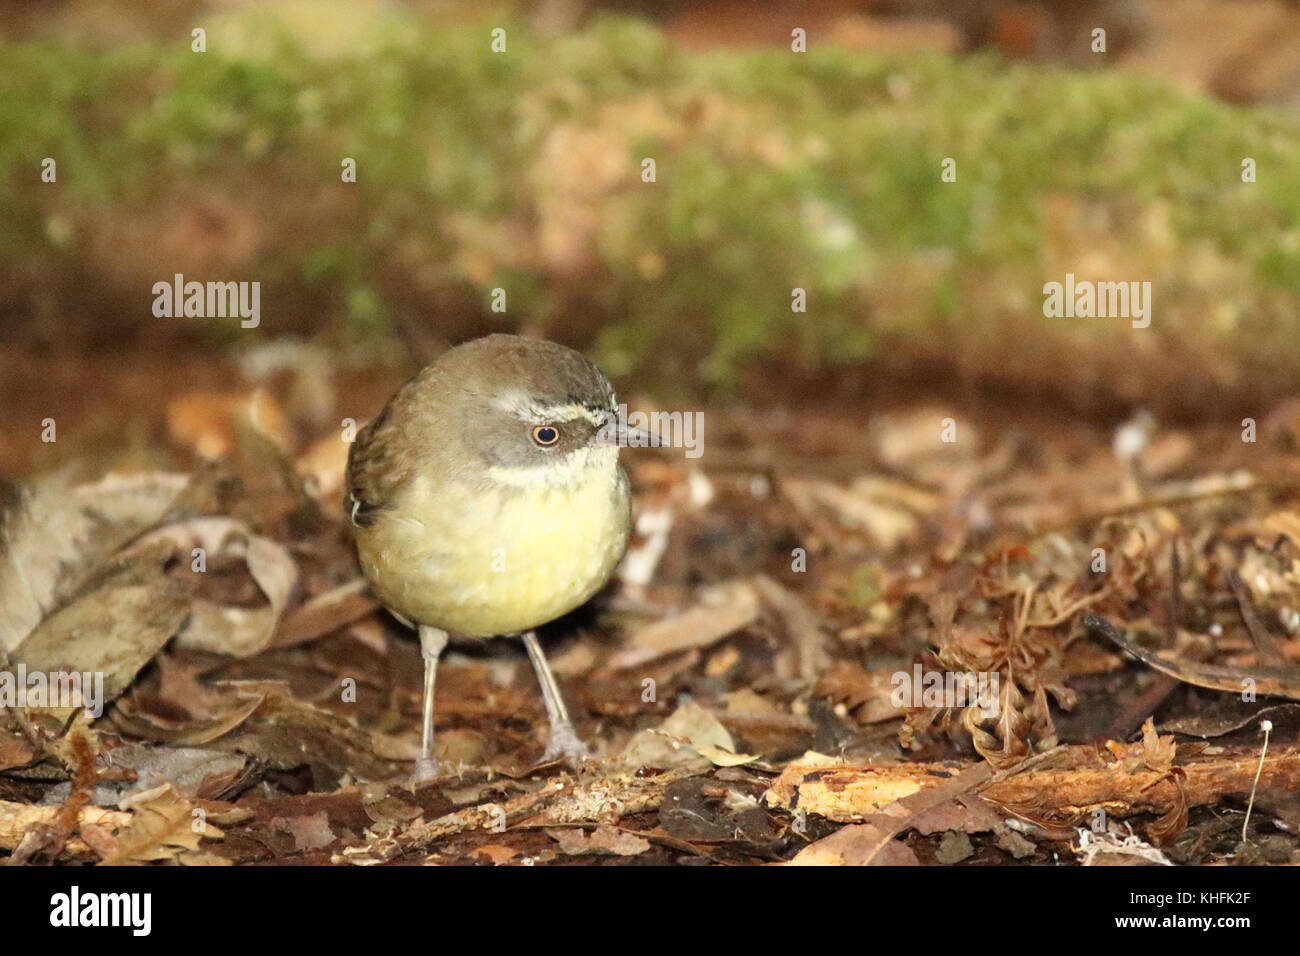 A White-browed Scrubwren searching the forest floor for food. - Stock Image